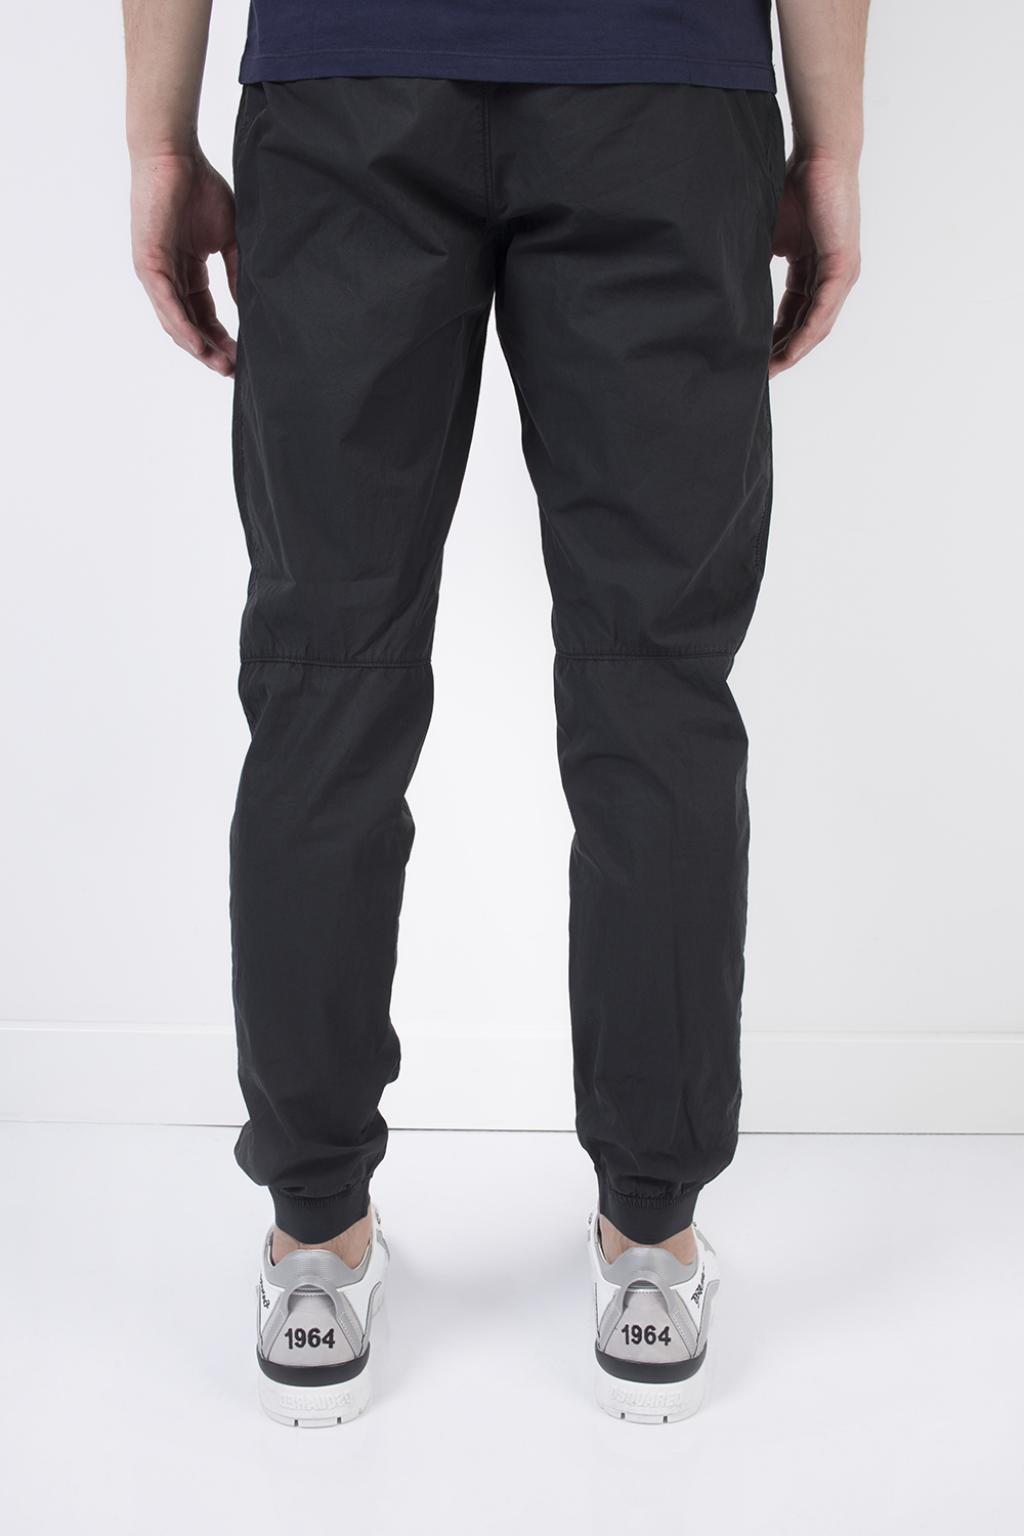 Stone Island Cotton Elasticated Cuffs Trousers in Blue for Men